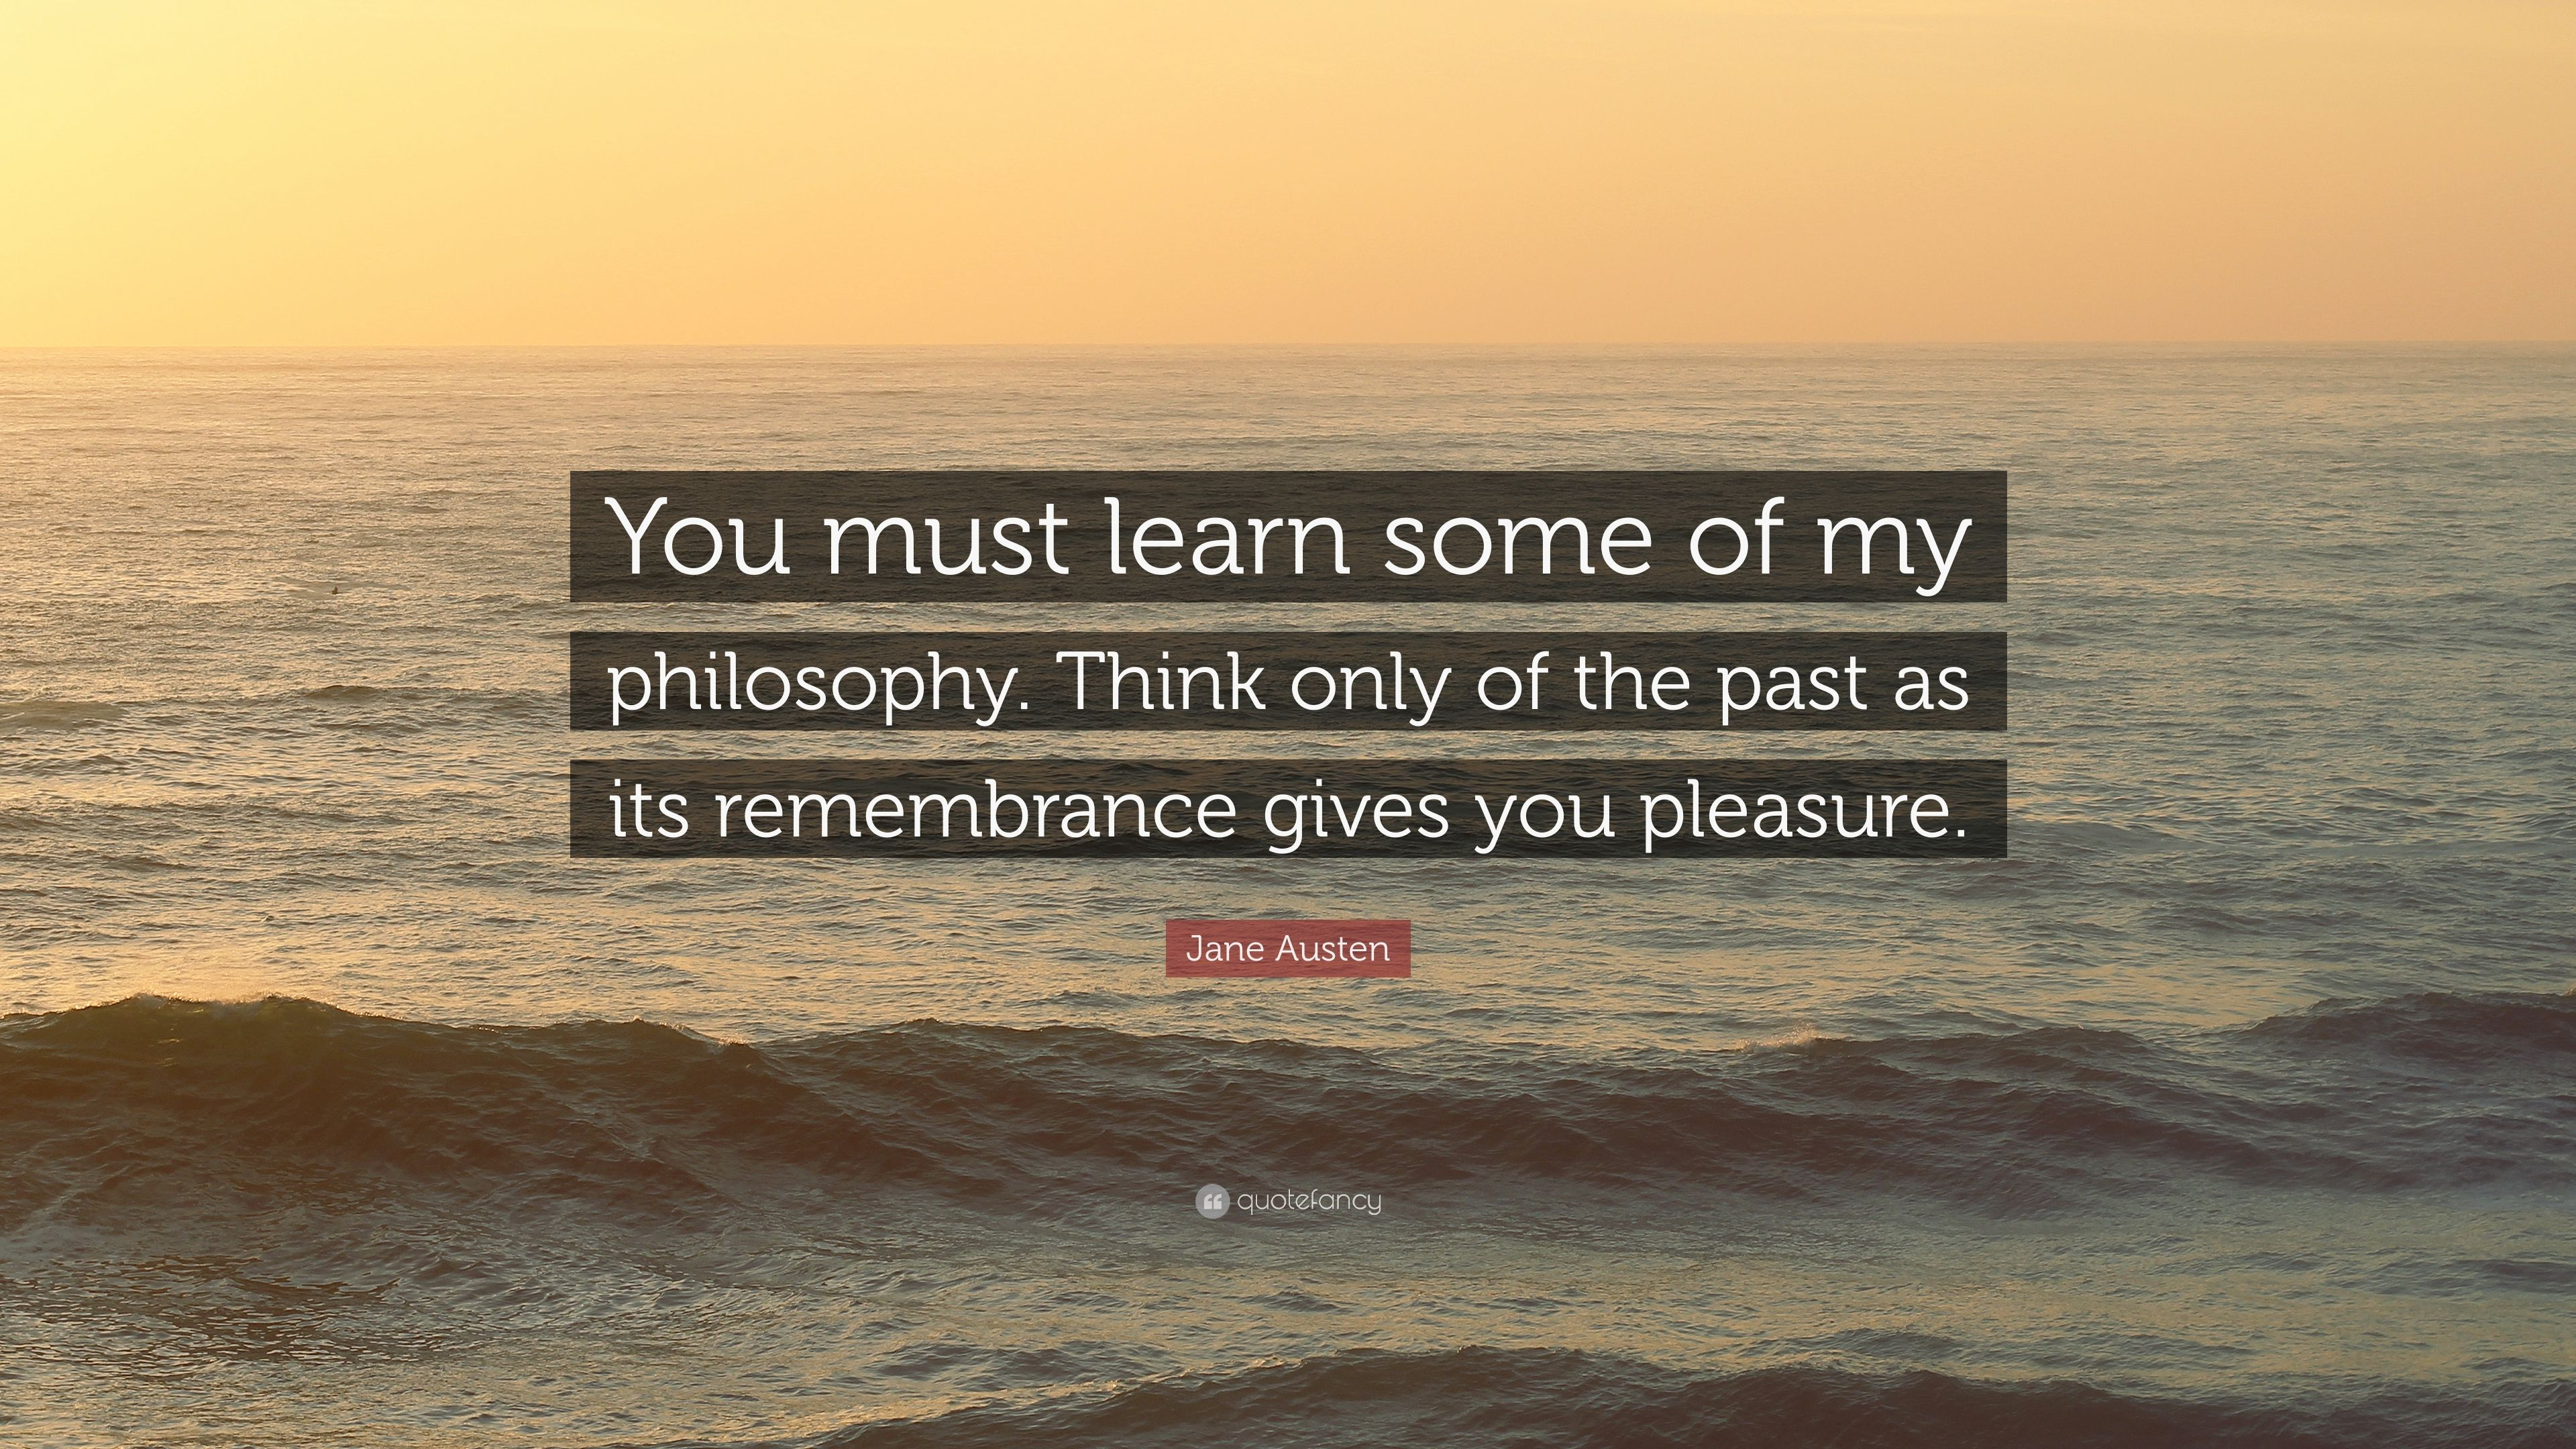 2609043-Jane-Austen-Quote-You-must-learn-some-of-my-philosophy-Think-only